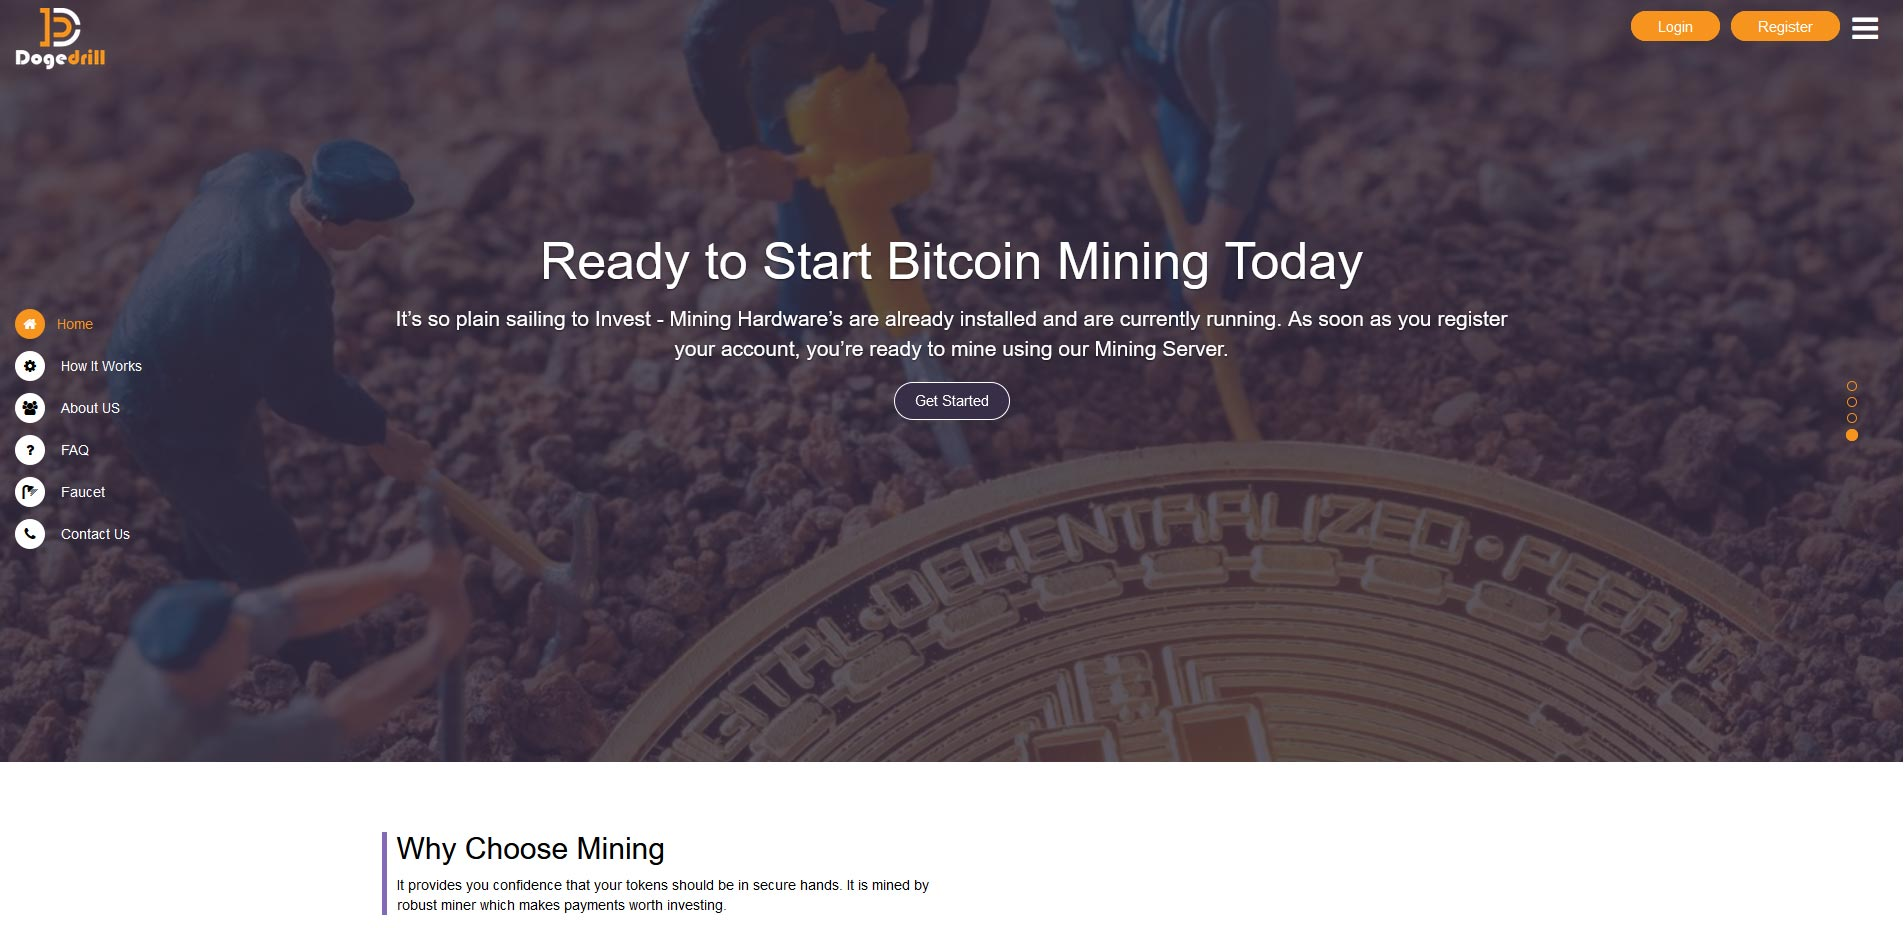 Dogedrill cloud mining review